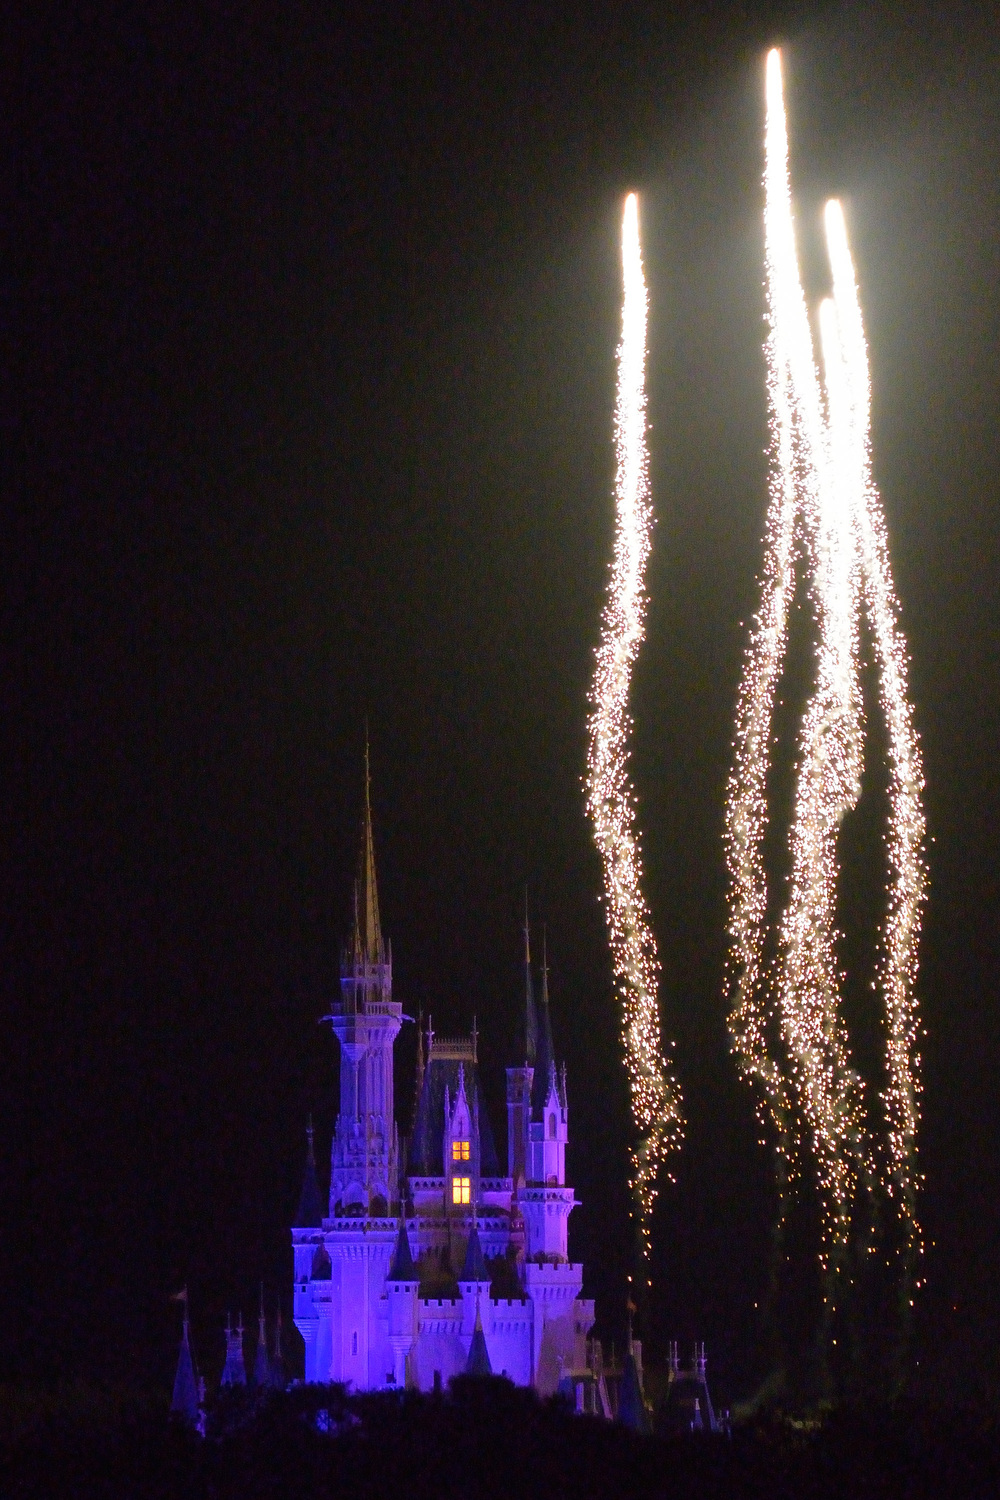 Fireworks can still be seen from some exterior lines in WDW, (Big Thunder Mountain, or Seven Dwarfs Mine Train) so you can enjoy a shorter line and still have a view of the fireworks!